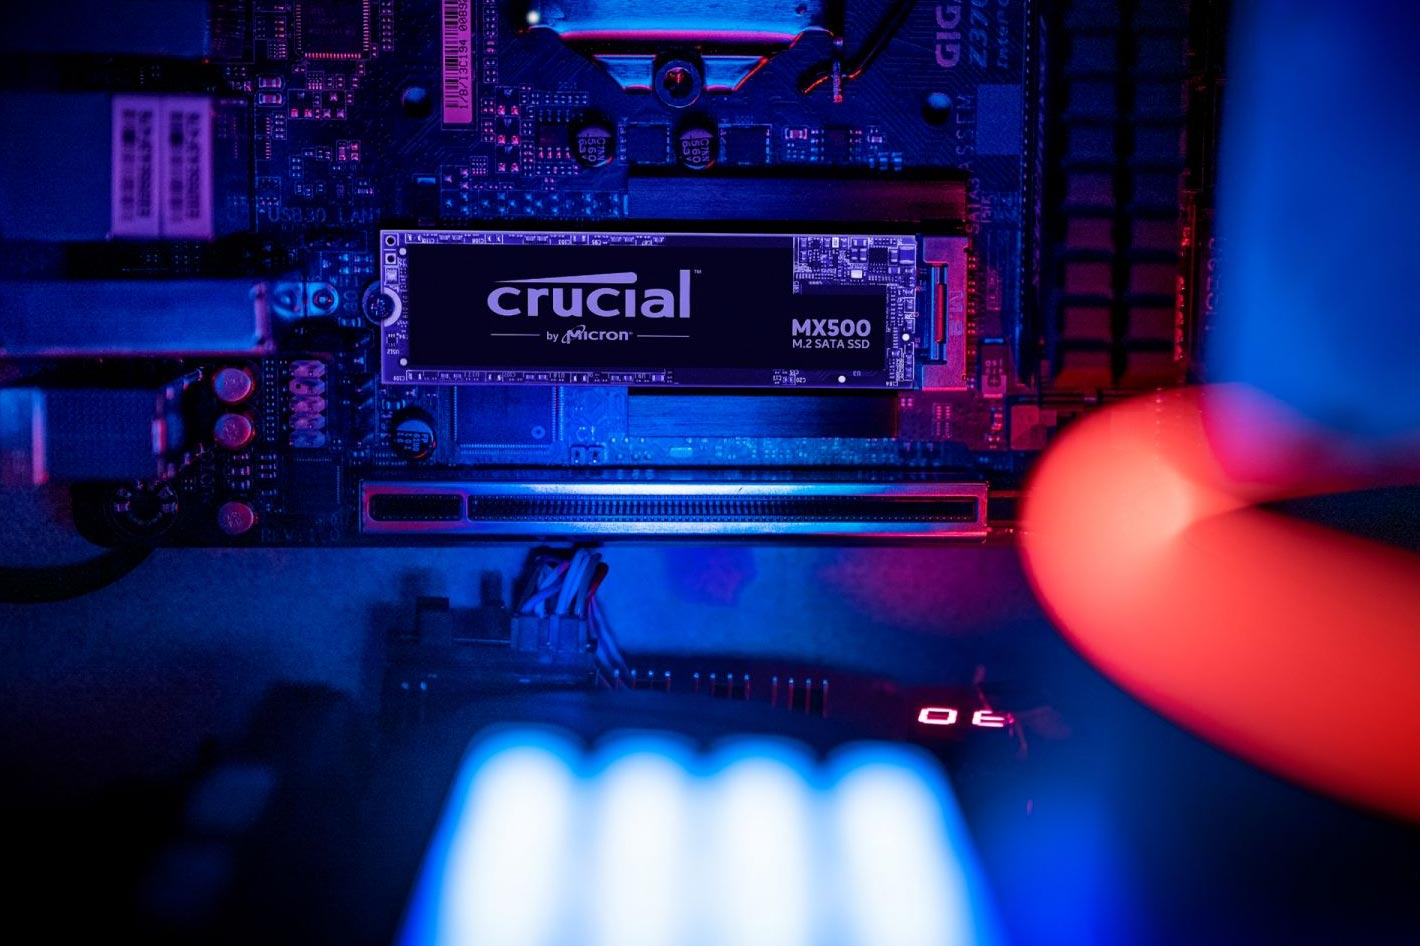 New Crucial SSDs will be bigger, faster and cheaper